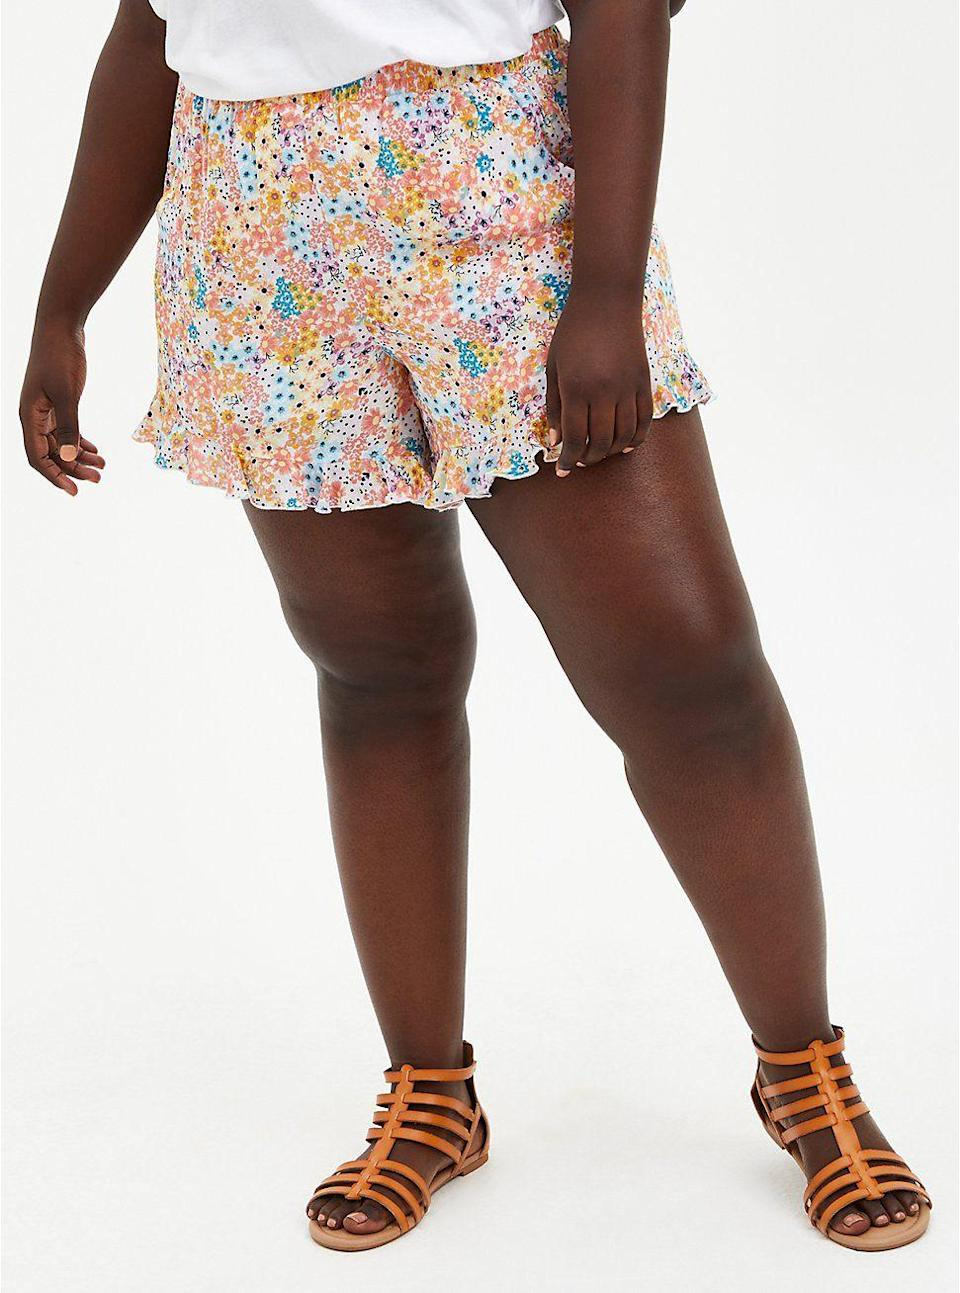 """<p>torrid.com</p><p><strong>$37.12</strong></p><p><a href=""""https://go.redirectingat.com?id=74968X1596630&url=https%3A%2F%2Fwww.torrid.com%2Fproduct%2Fcoral-floral-gauze-ruffle-hem-short%2F14684852.html&sref=https%3A%2F%2Fwww.thepioneerwoman.com%2Ffashion-style%2Fg37083925%2Fbest-plus-size-shorts%2F"""" rel=""""nofollow noopener"""" target=""""_blank"""" data-ylk=""""slk:Shop Now"""" class=""""link rapid-noclick-resp"""">Shop Now</a></p><p>These shorts are cute and comfortable! Their loose, breezy fit make them amazing for those hot summer days. Best part: They have pockets! </p>"""